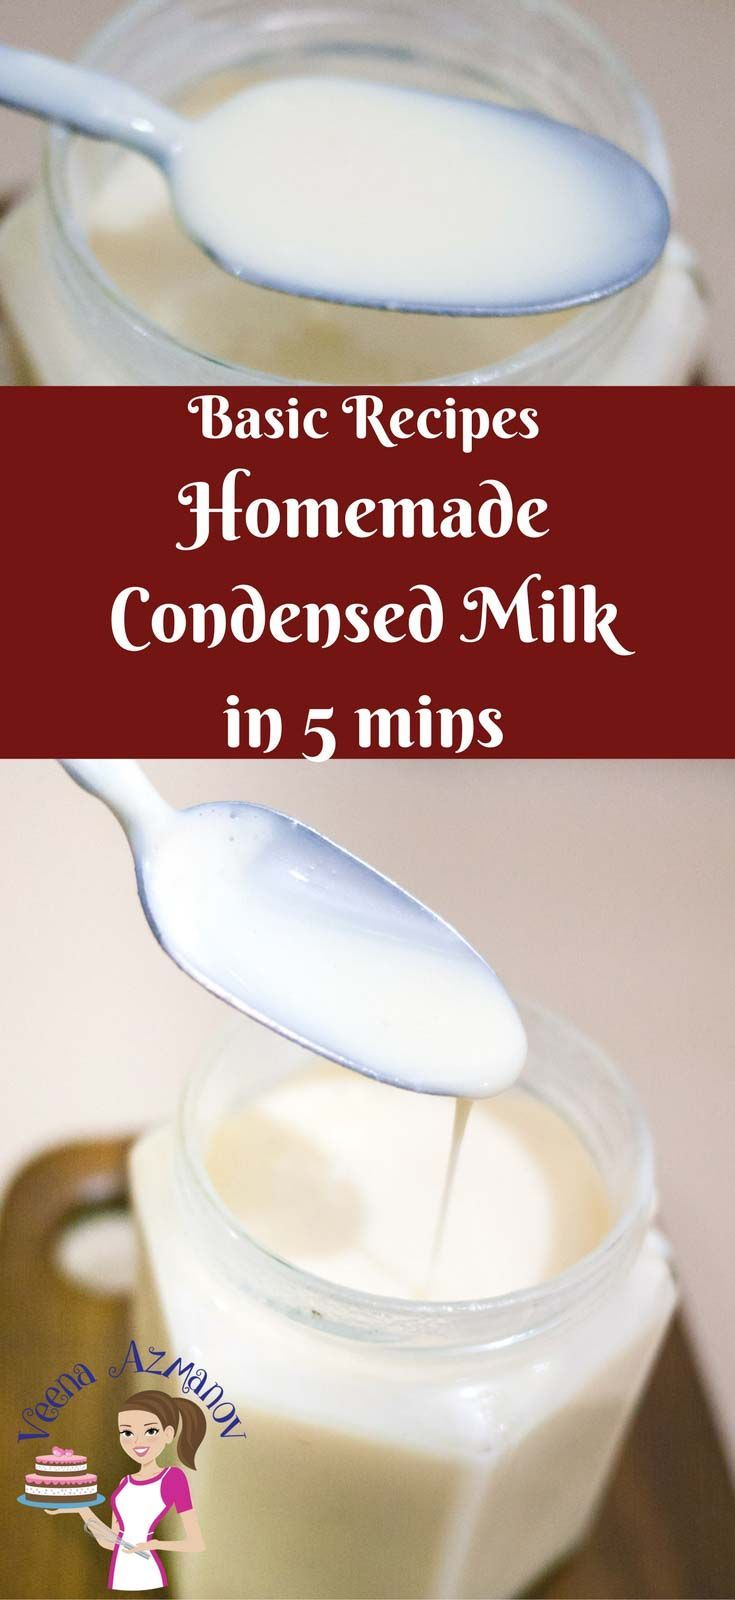 Traditional condensed milk can takes hours but this quick and easy recipe will do the trick in just 5 minutes. Make sweetened or unsweetened condensed milk.